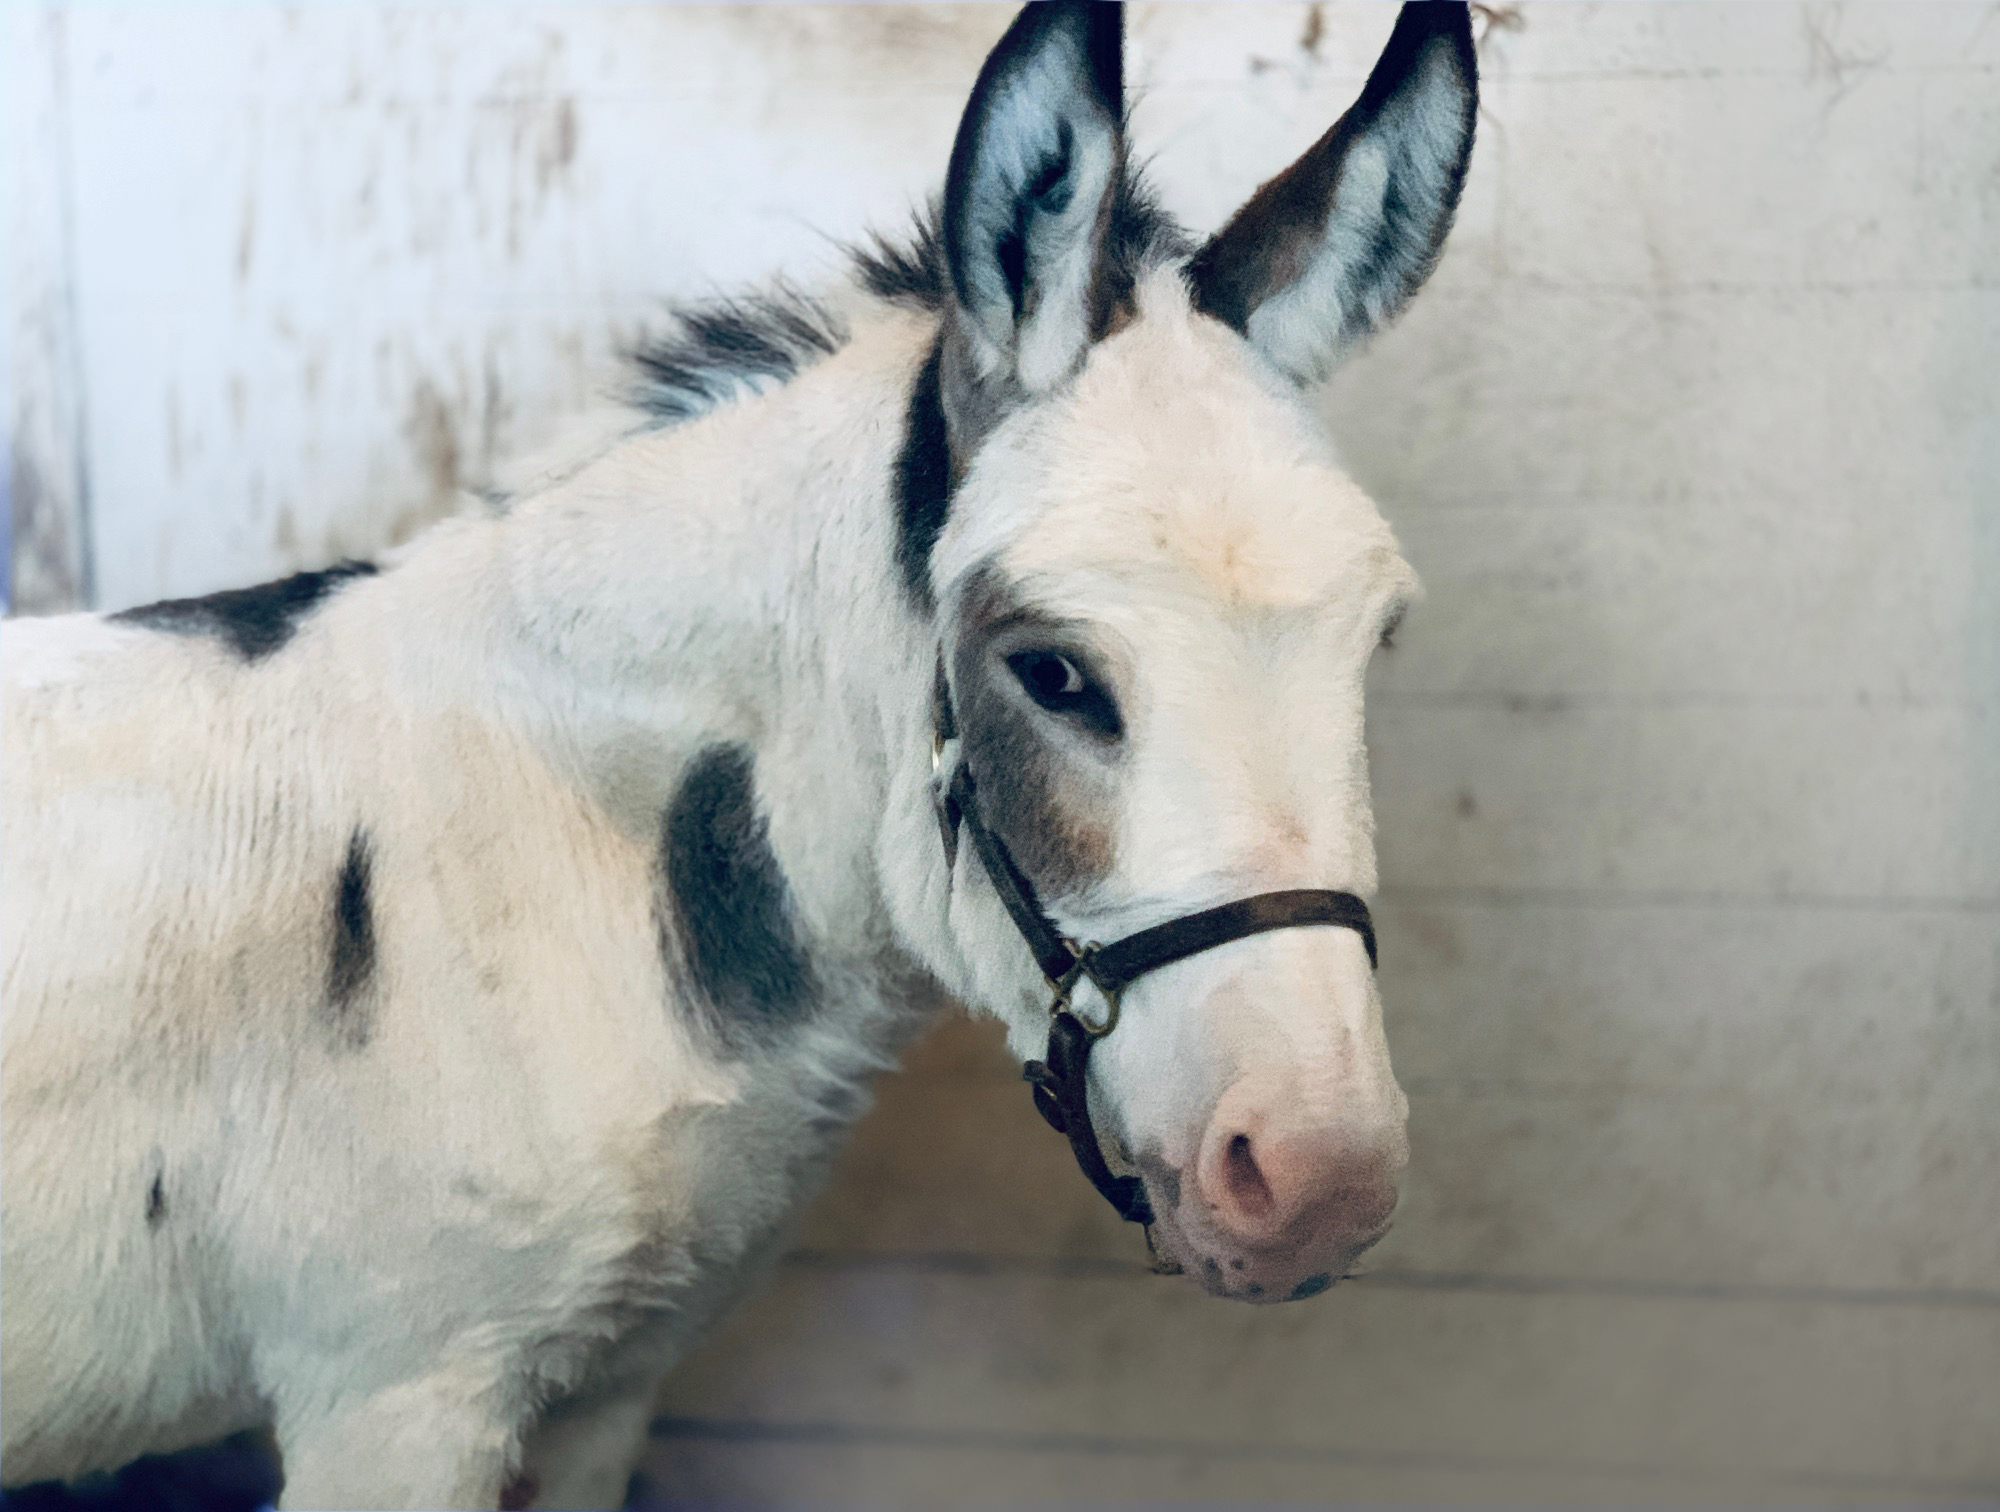 Sunny, our mini donkey, posing for the camera.